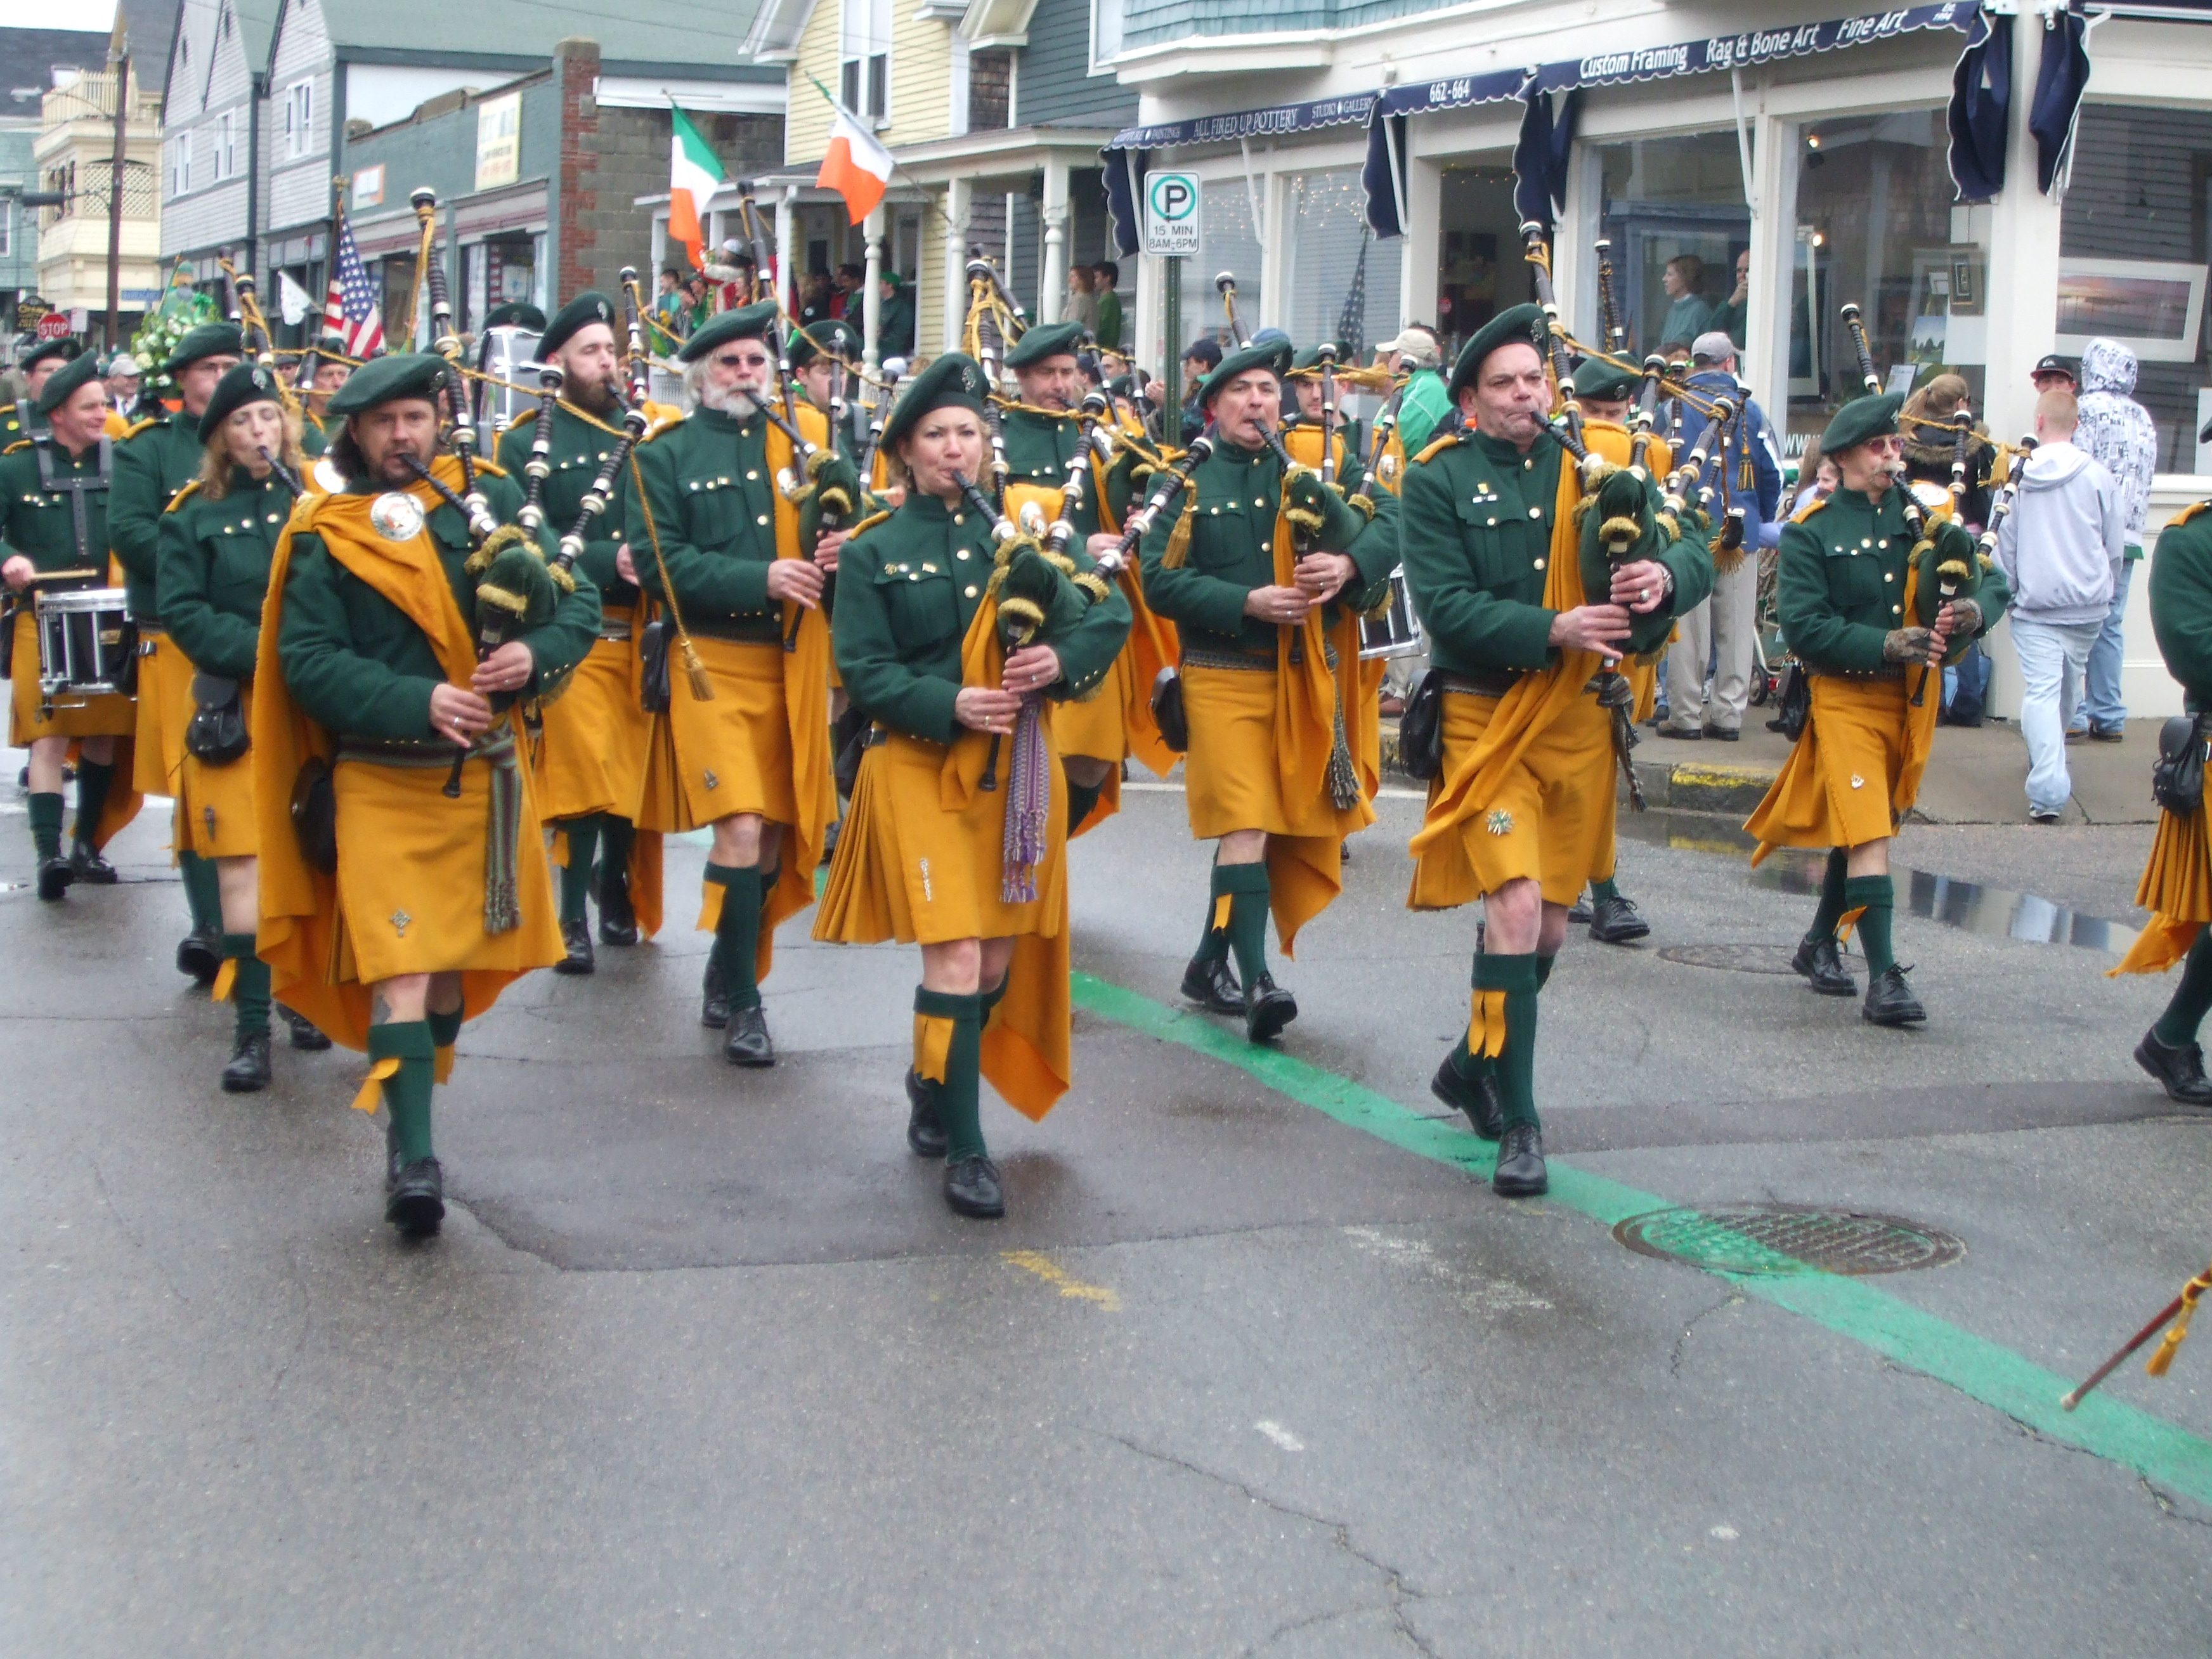 Before the Kilt How the Irish and Scots Dressed in the